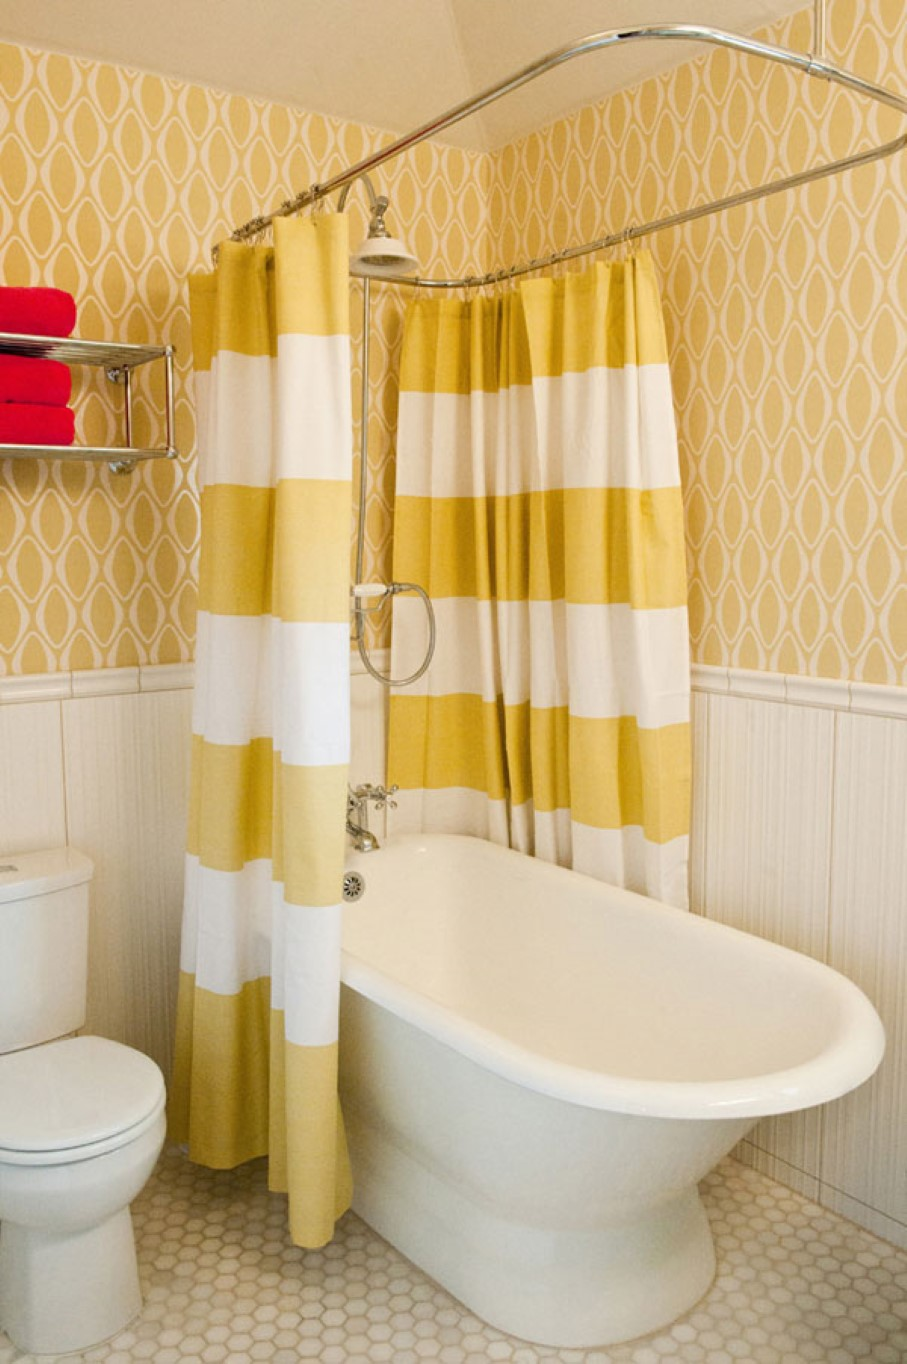 Art Deco Shower Curtain: How to Decorate Bathroom with Style | HomesFeed